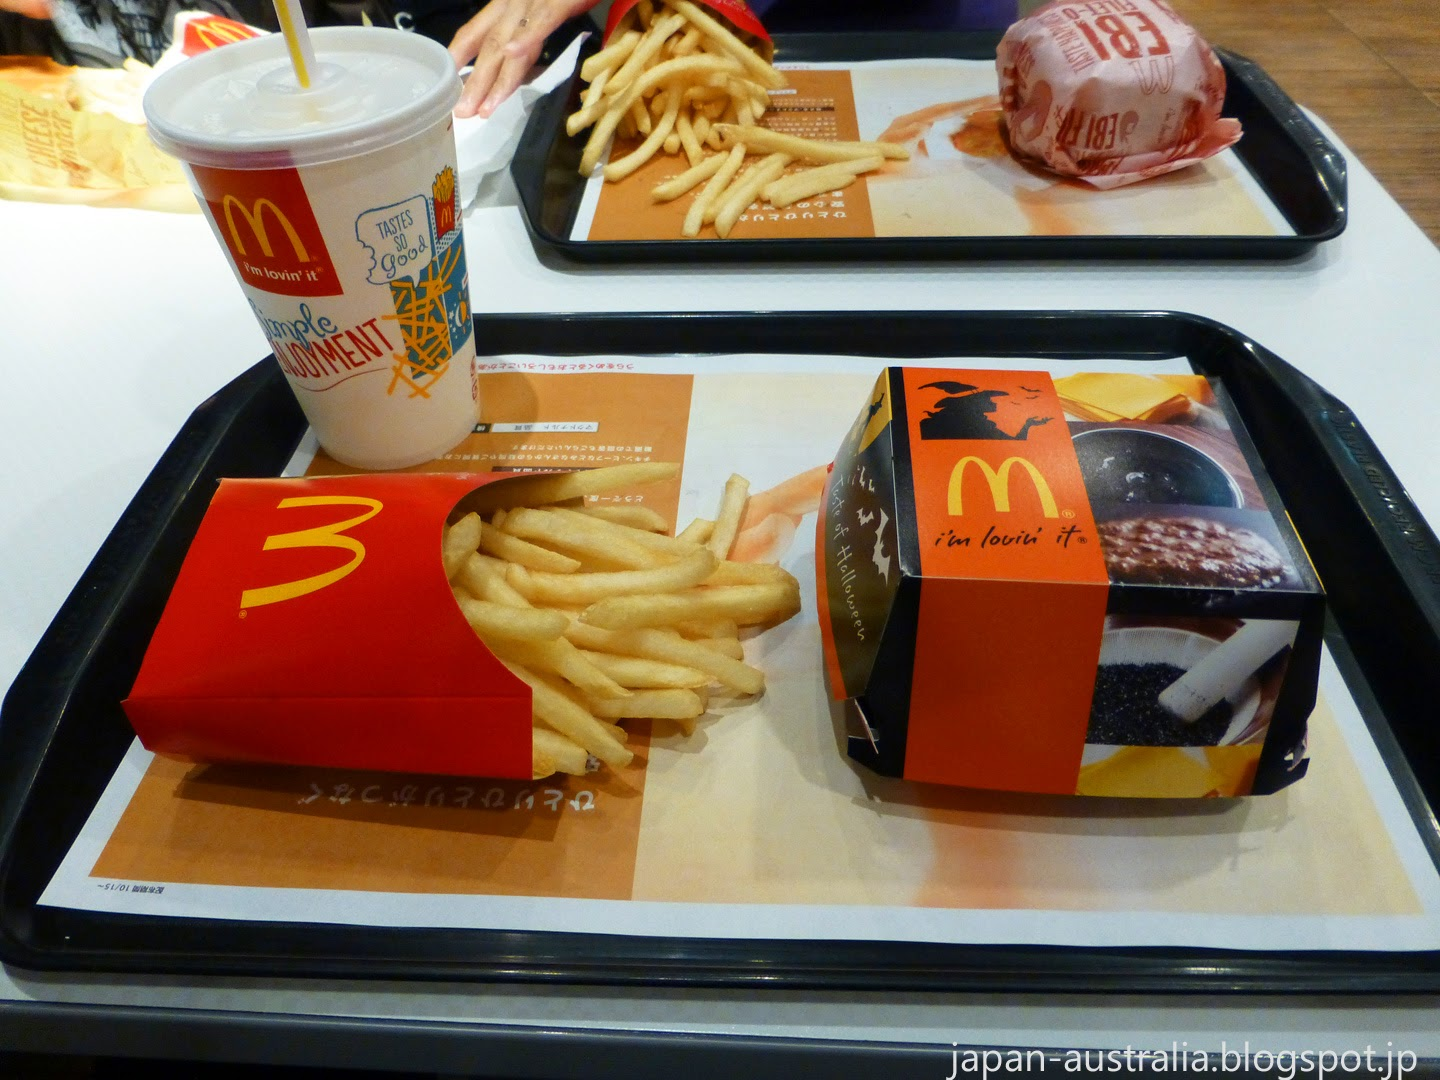 Japan Australia: McDonald's Japan Halloween Burger